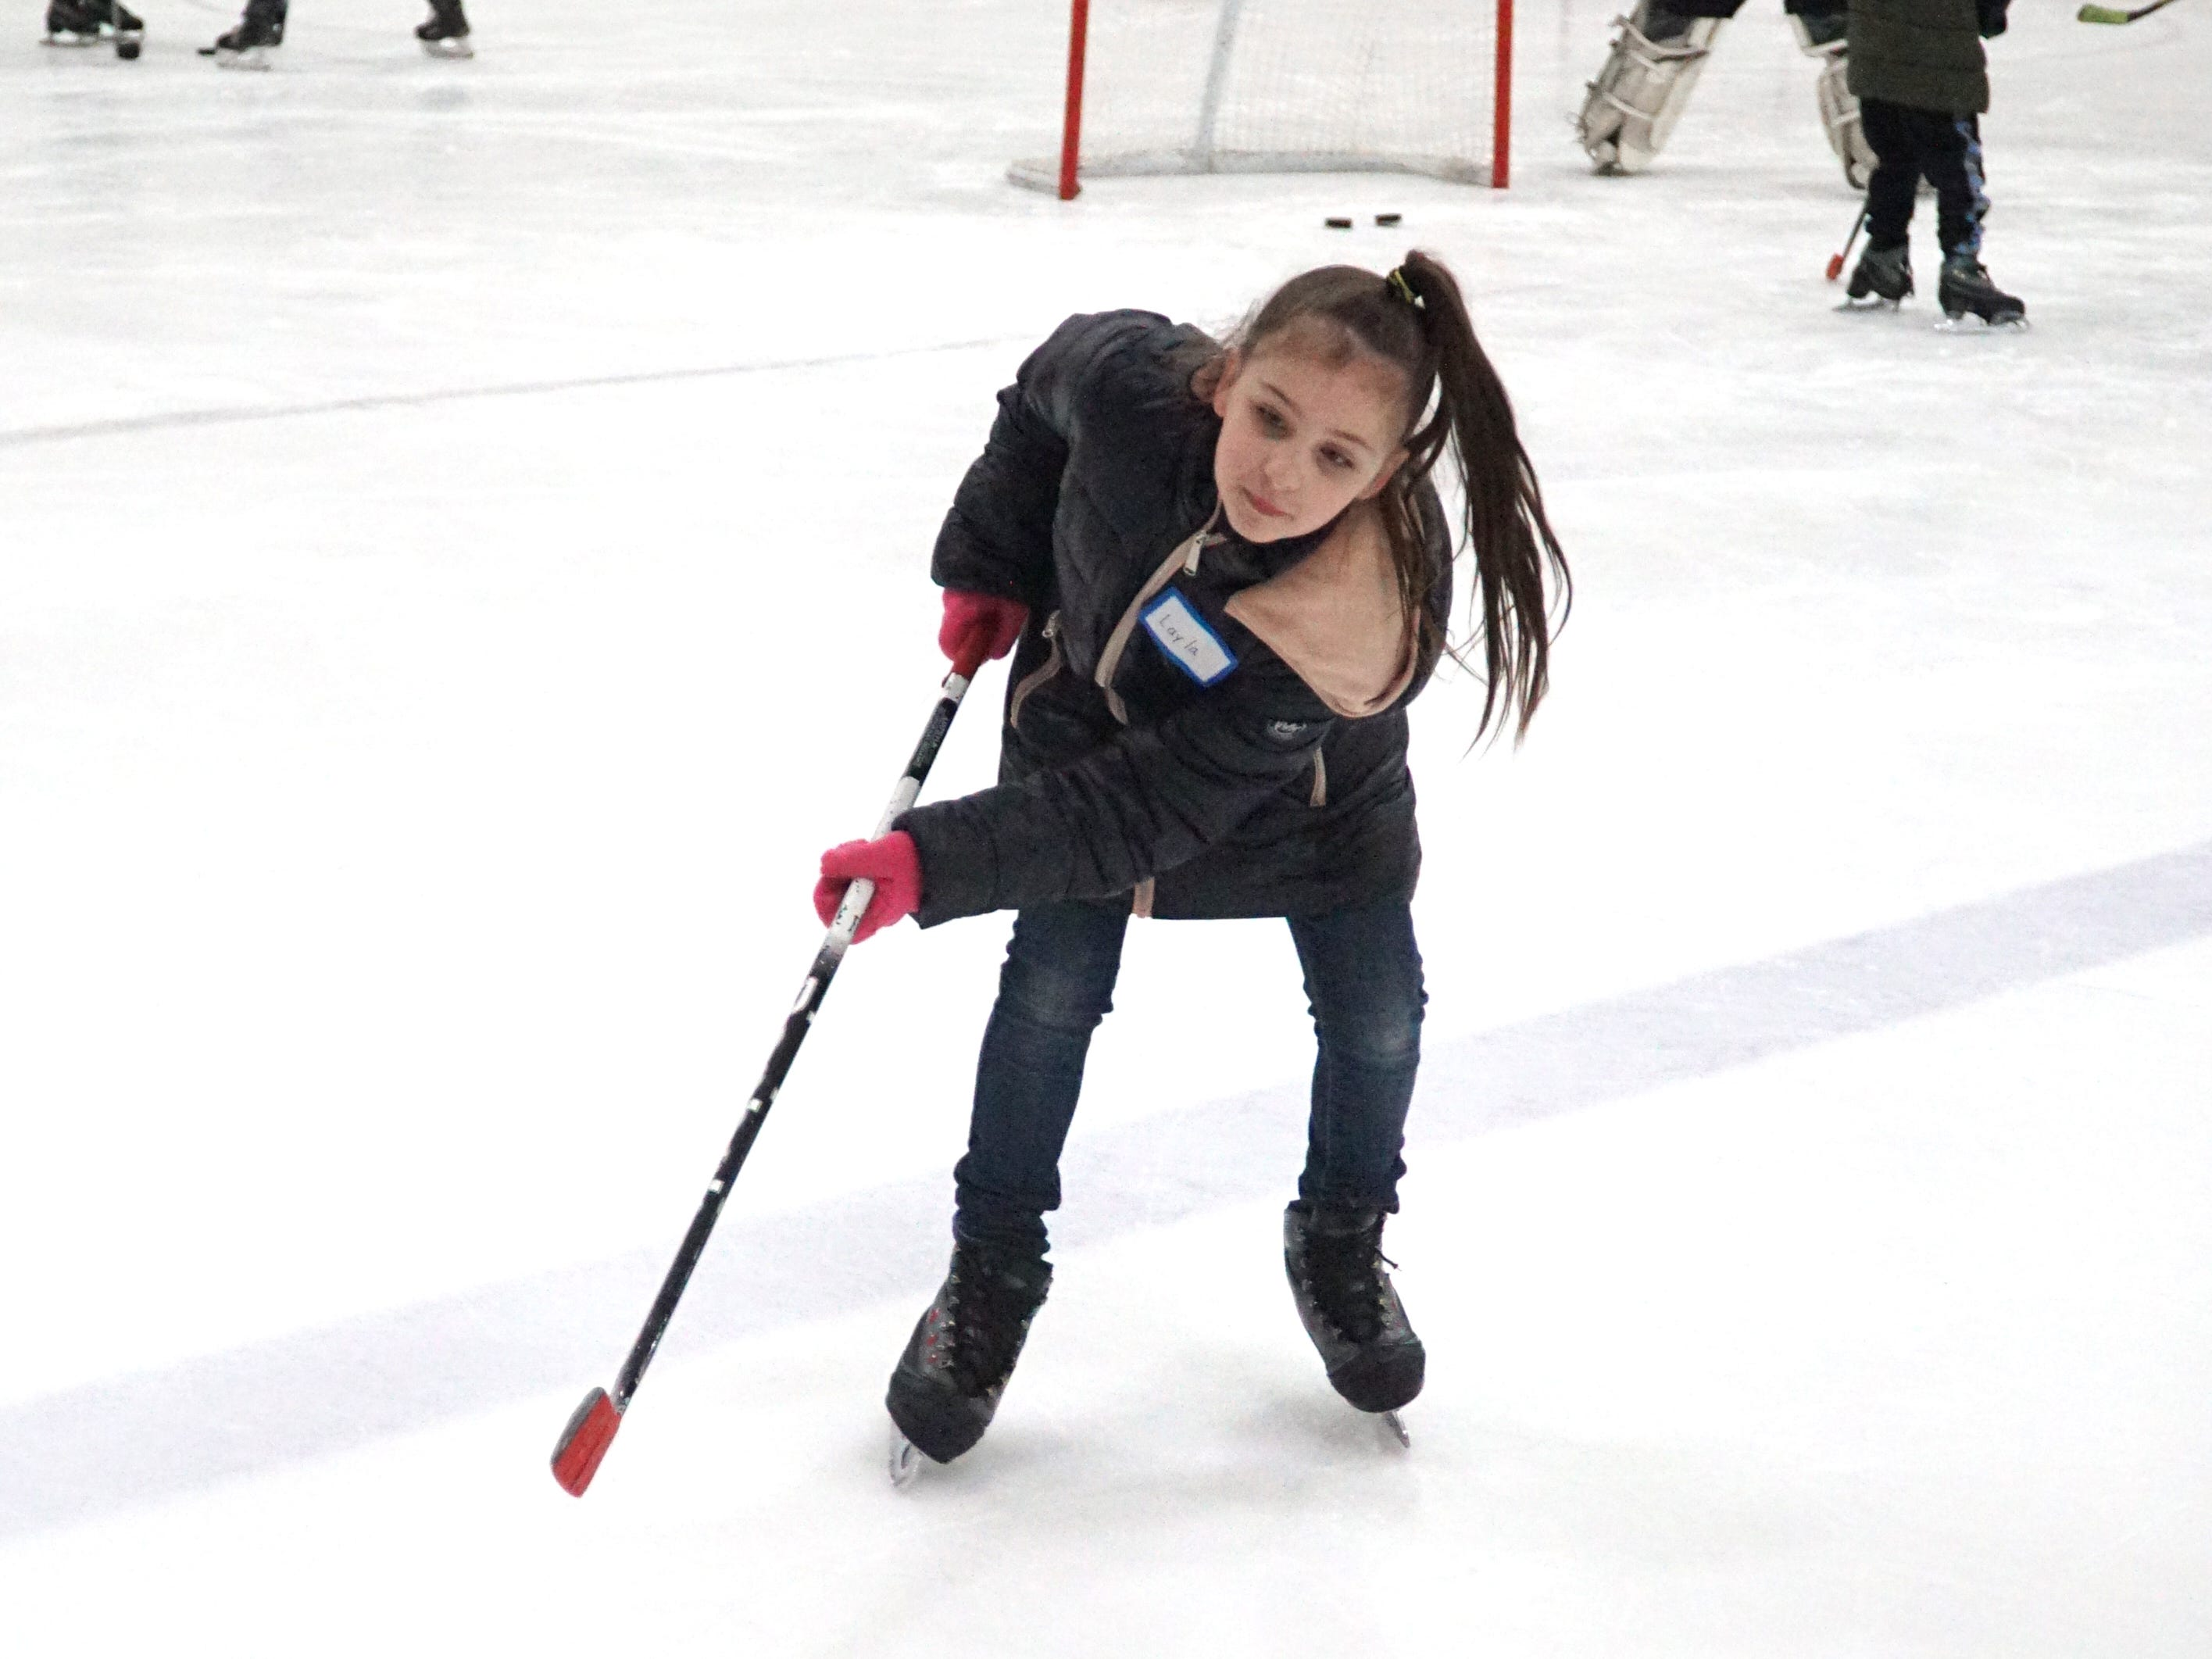 Layla Abbott, 9, takes a slap shot at the net during her time on the ice at the Novi Ice Arena. The Neinas Elementary student was being assisted in her hockey skills by Northville varsity players.